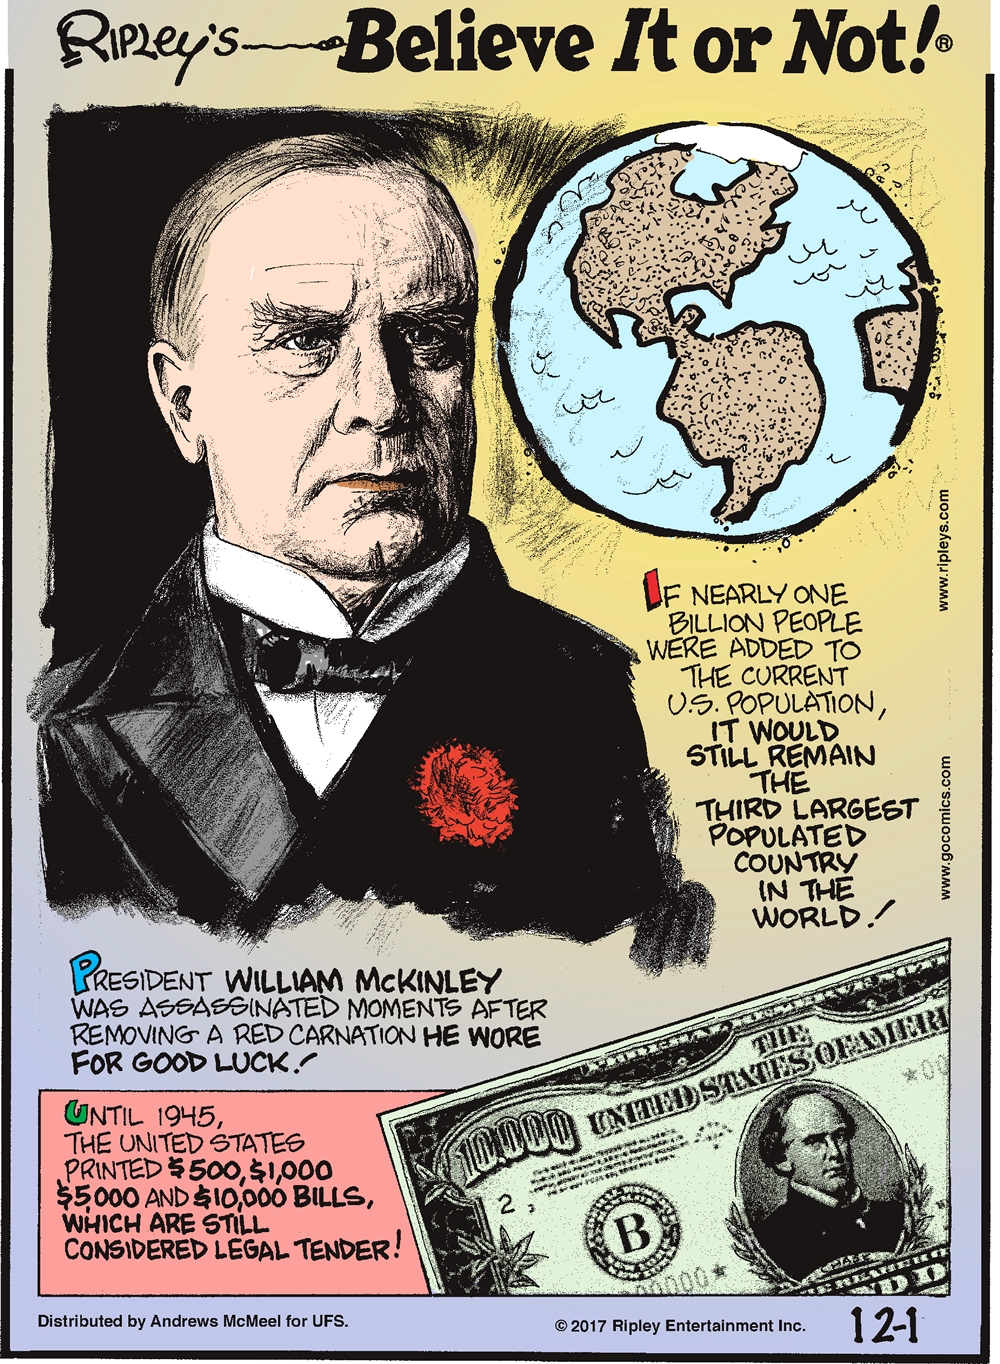 If nearly one billion people were added to the current U.S. population, it would still remain the third largest populated country in the world!-------------------- President William McKinley was assassinated moments after removing a red carnation he wore for good luck!-------------------- Until 1945, the United States printed $500, $1,000, $5,000 and $10,000 bills which are still considered legal tender!